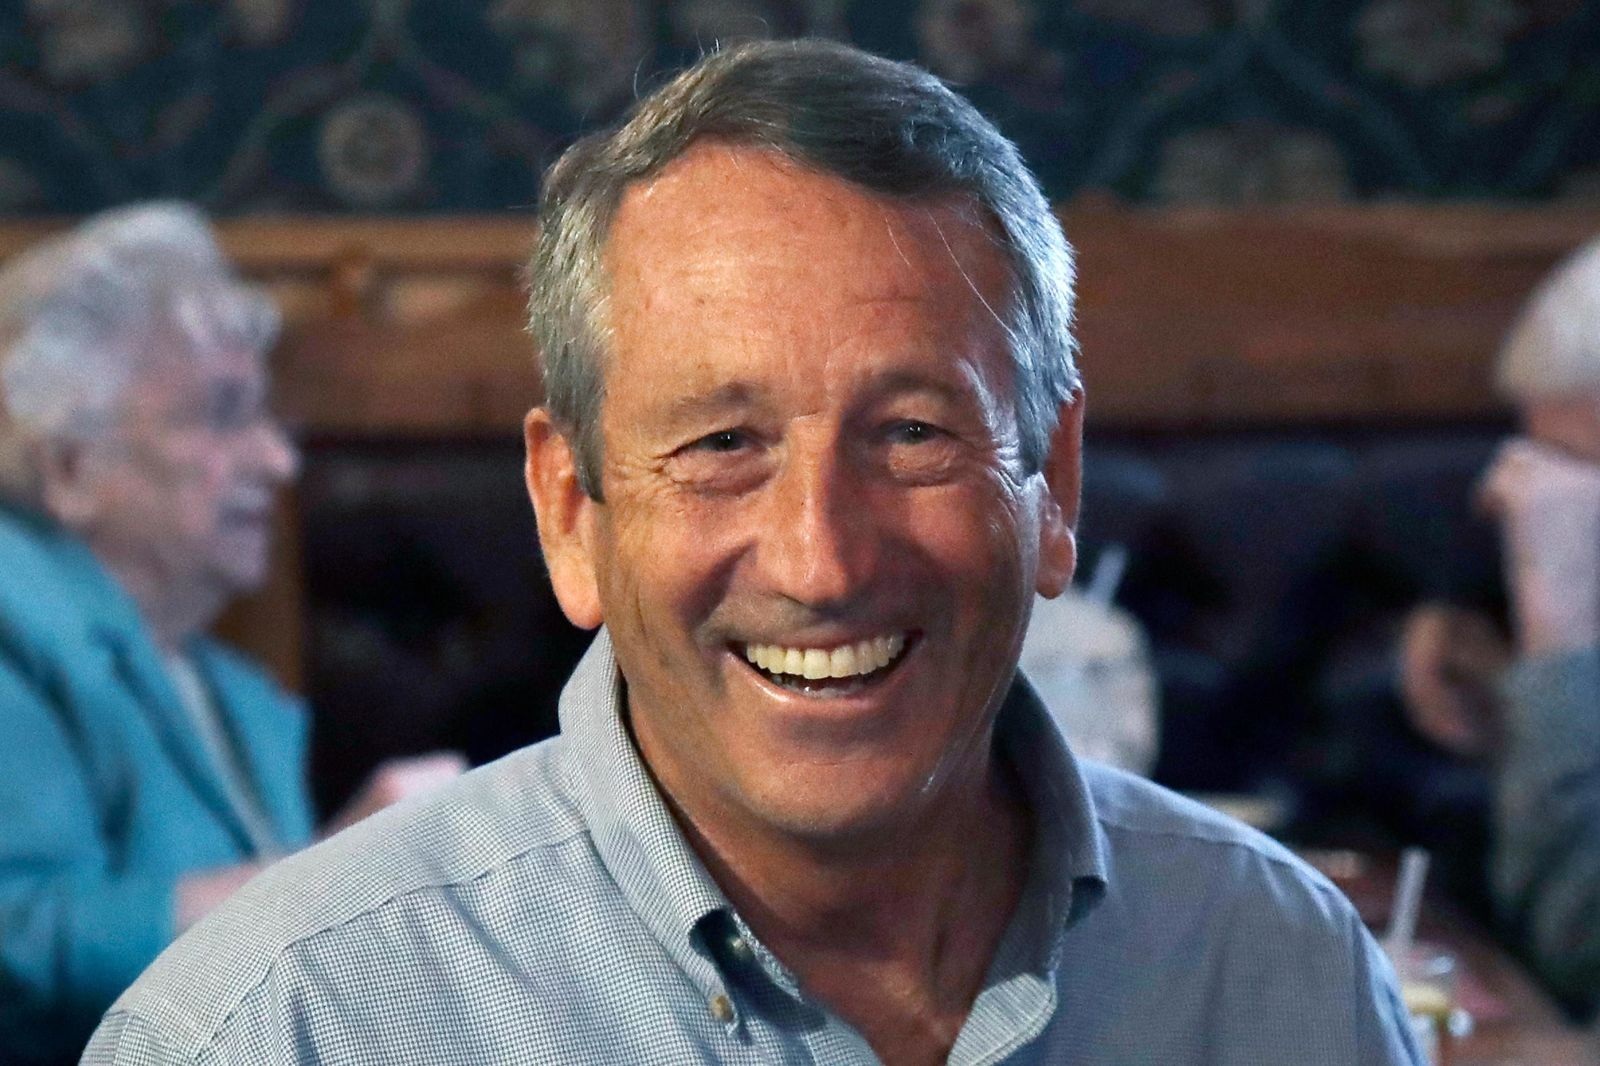 Republican presidential candidate, former South Carolina Gov. Mark Sanford smiles as he talks with customers at the Puritan Backroom restaurant, during a campaign stop, Thursday, Sept. 19, 2019, in Manchester, N.H. (AP Photo/Elise Amendola)